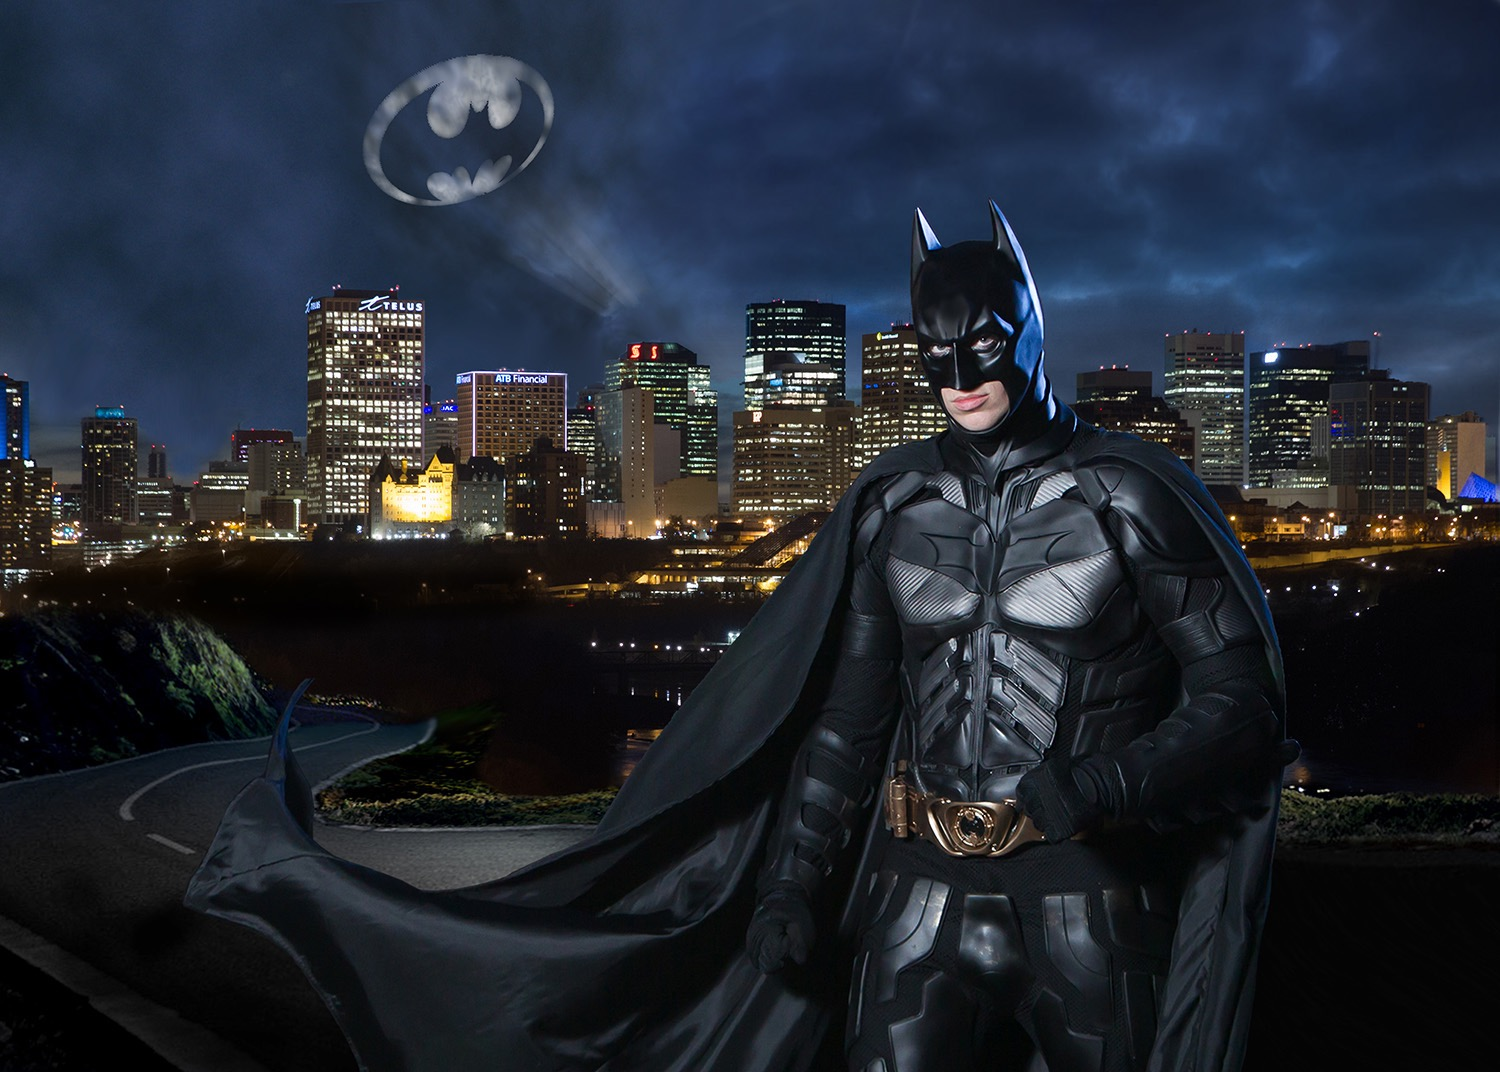 Batman cosplay by Trident Photography